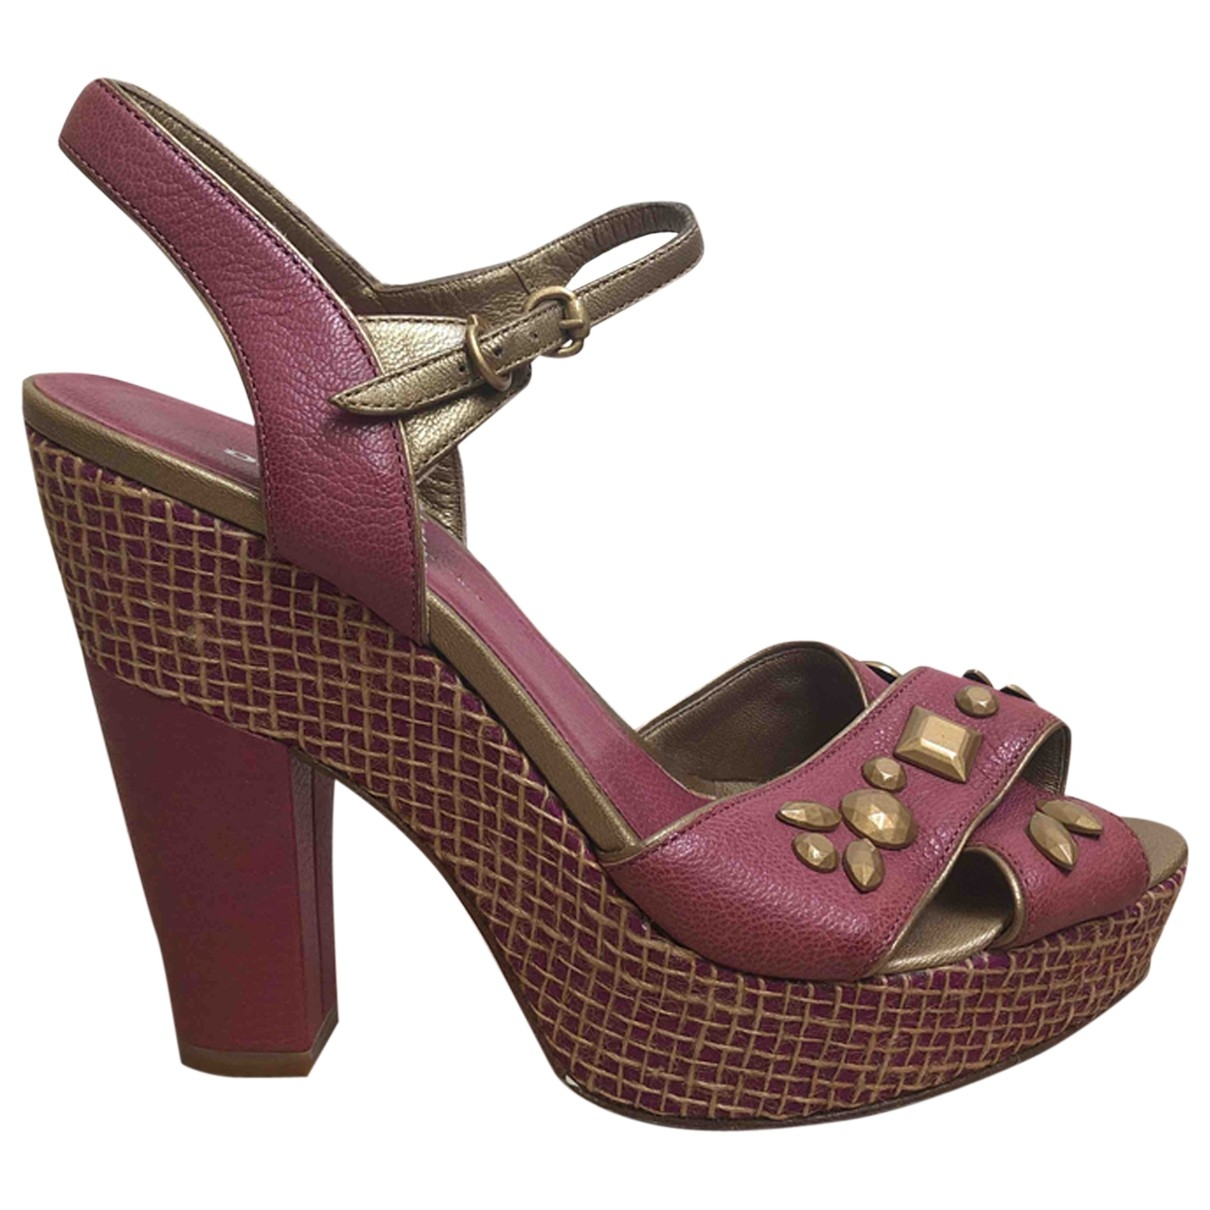 Dkny \N Pink Leather Heels for Women 7.5 US